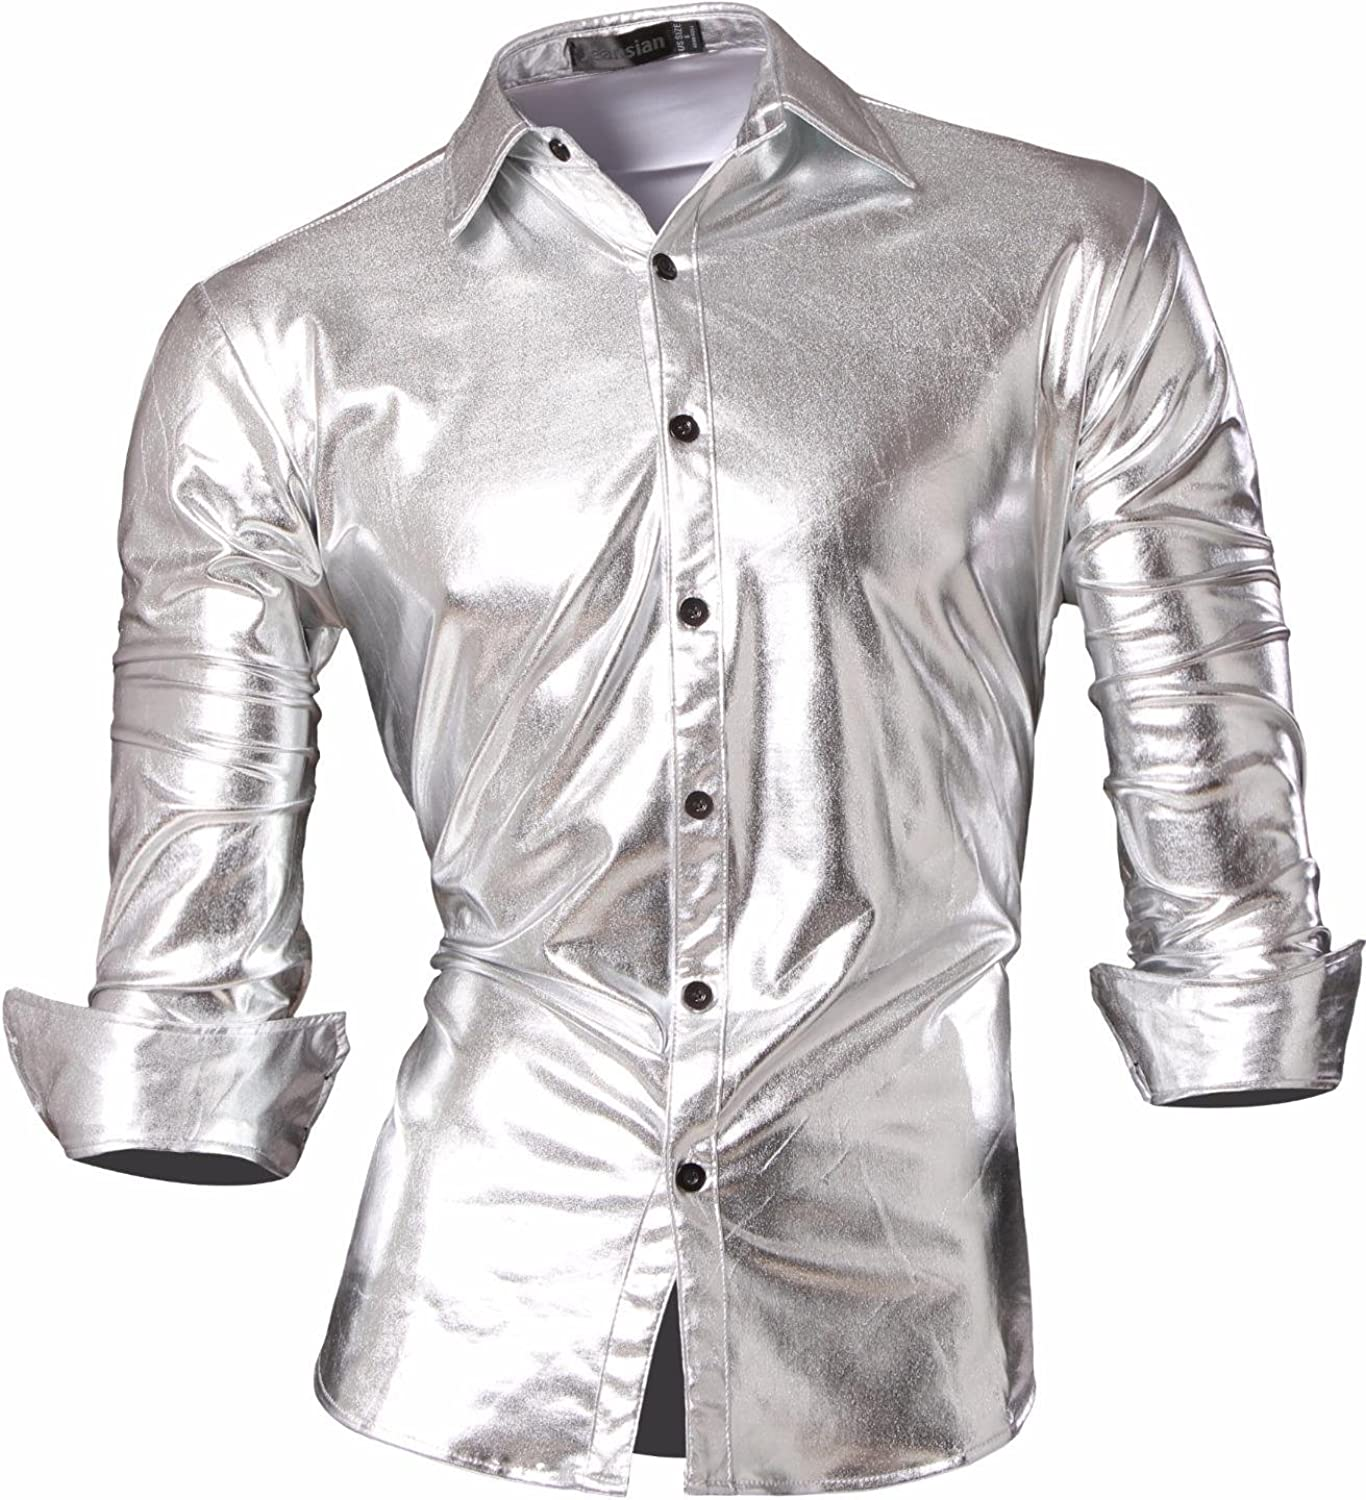 1960s Inspired Fashion: Recreate the Look jeansian Mens Fashion Bronzing Bling Shiny Slim Button Down Long Sleeves Dress Shirts Tops Z036 £14.99 AT vintagedancer.com